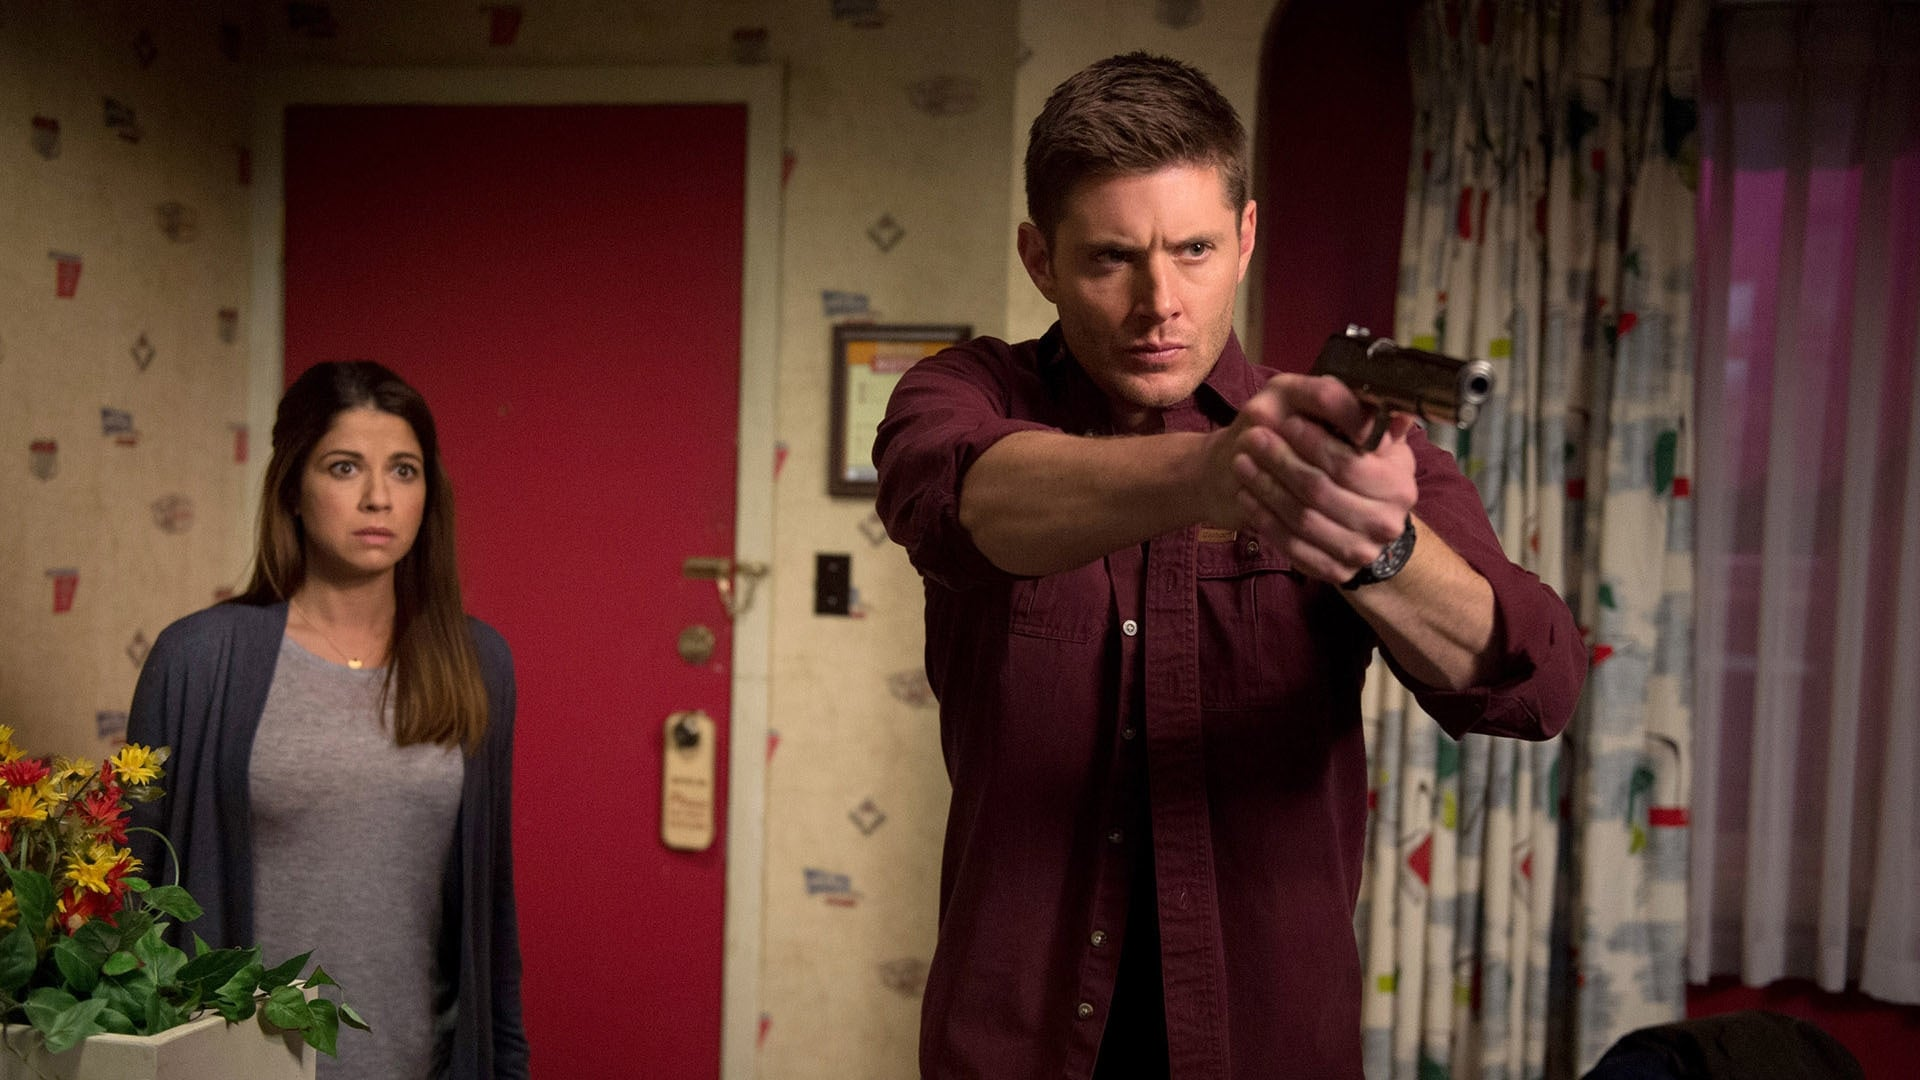 Supernatural - Season 11 Episode 13 : Love Hurts